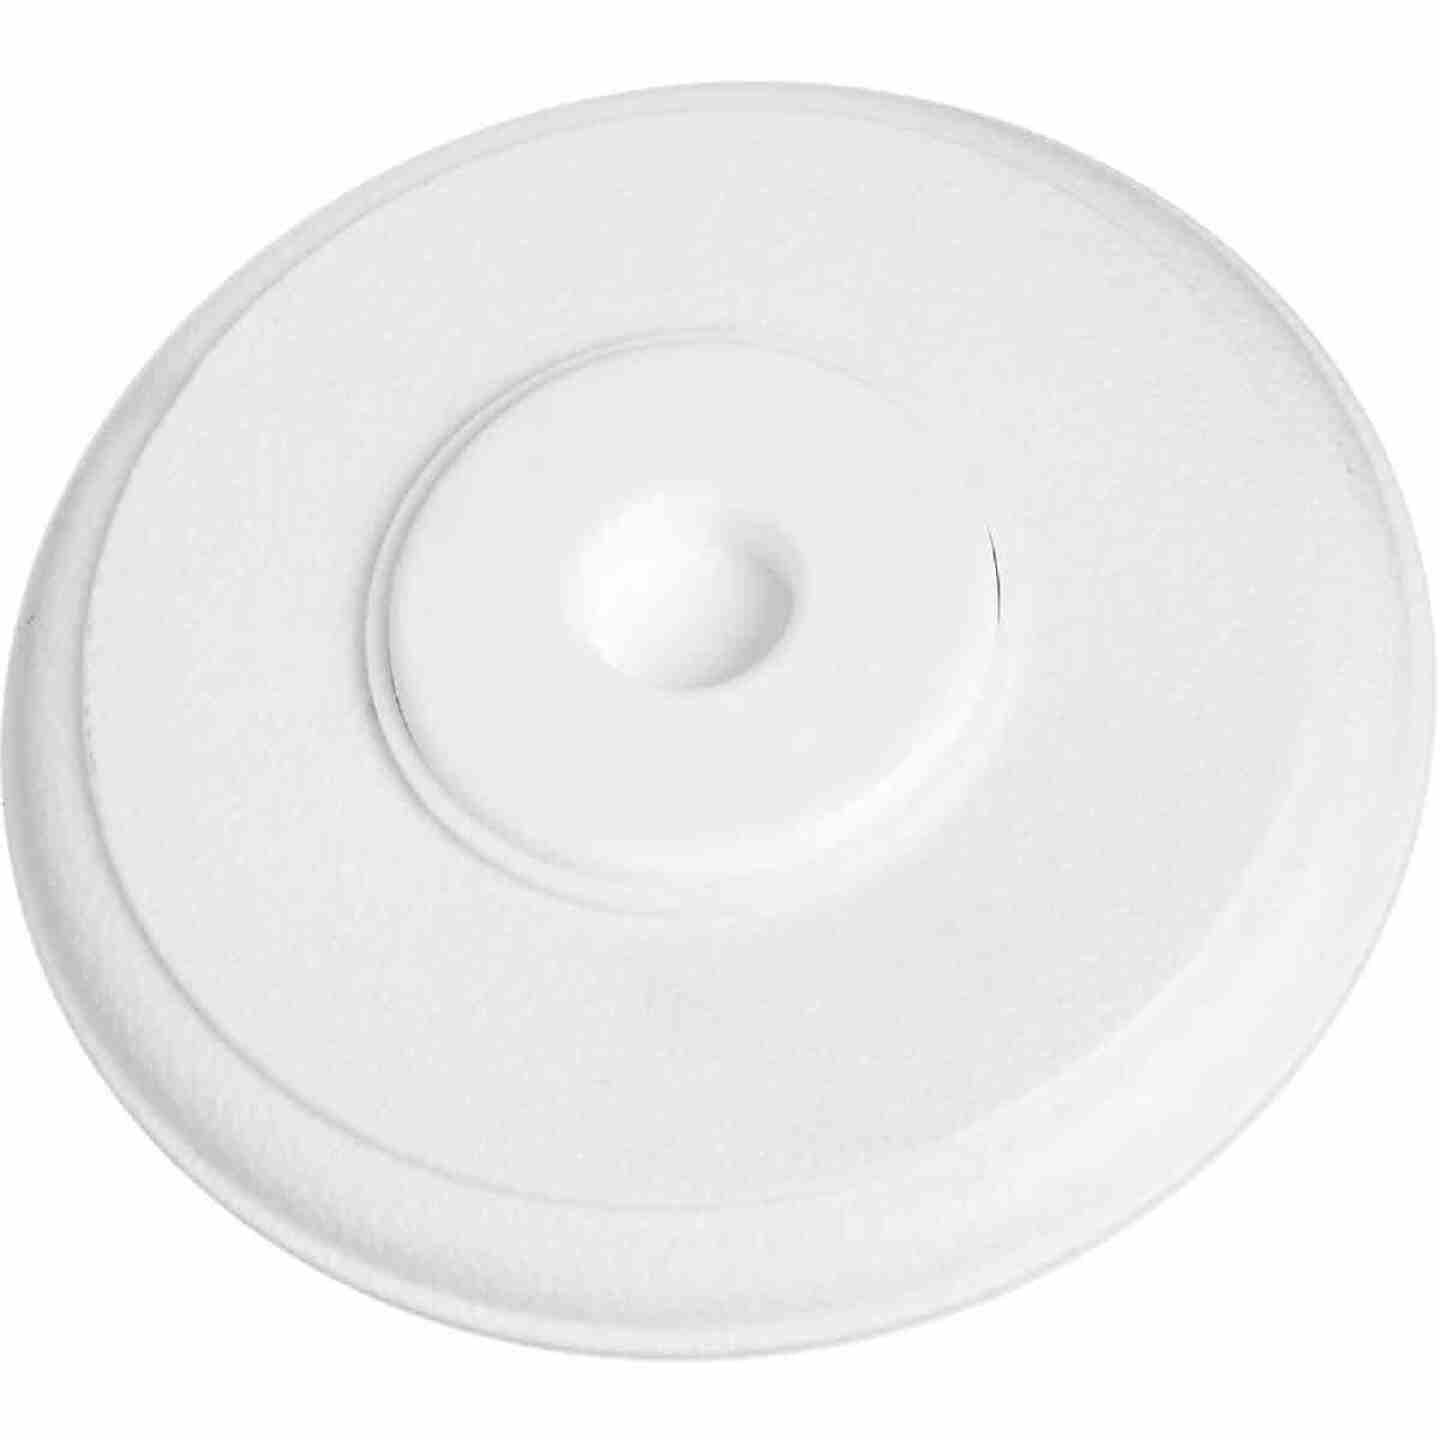 National 336 5 In. White Softstop Cover-Up Wall Door Stop Image 1